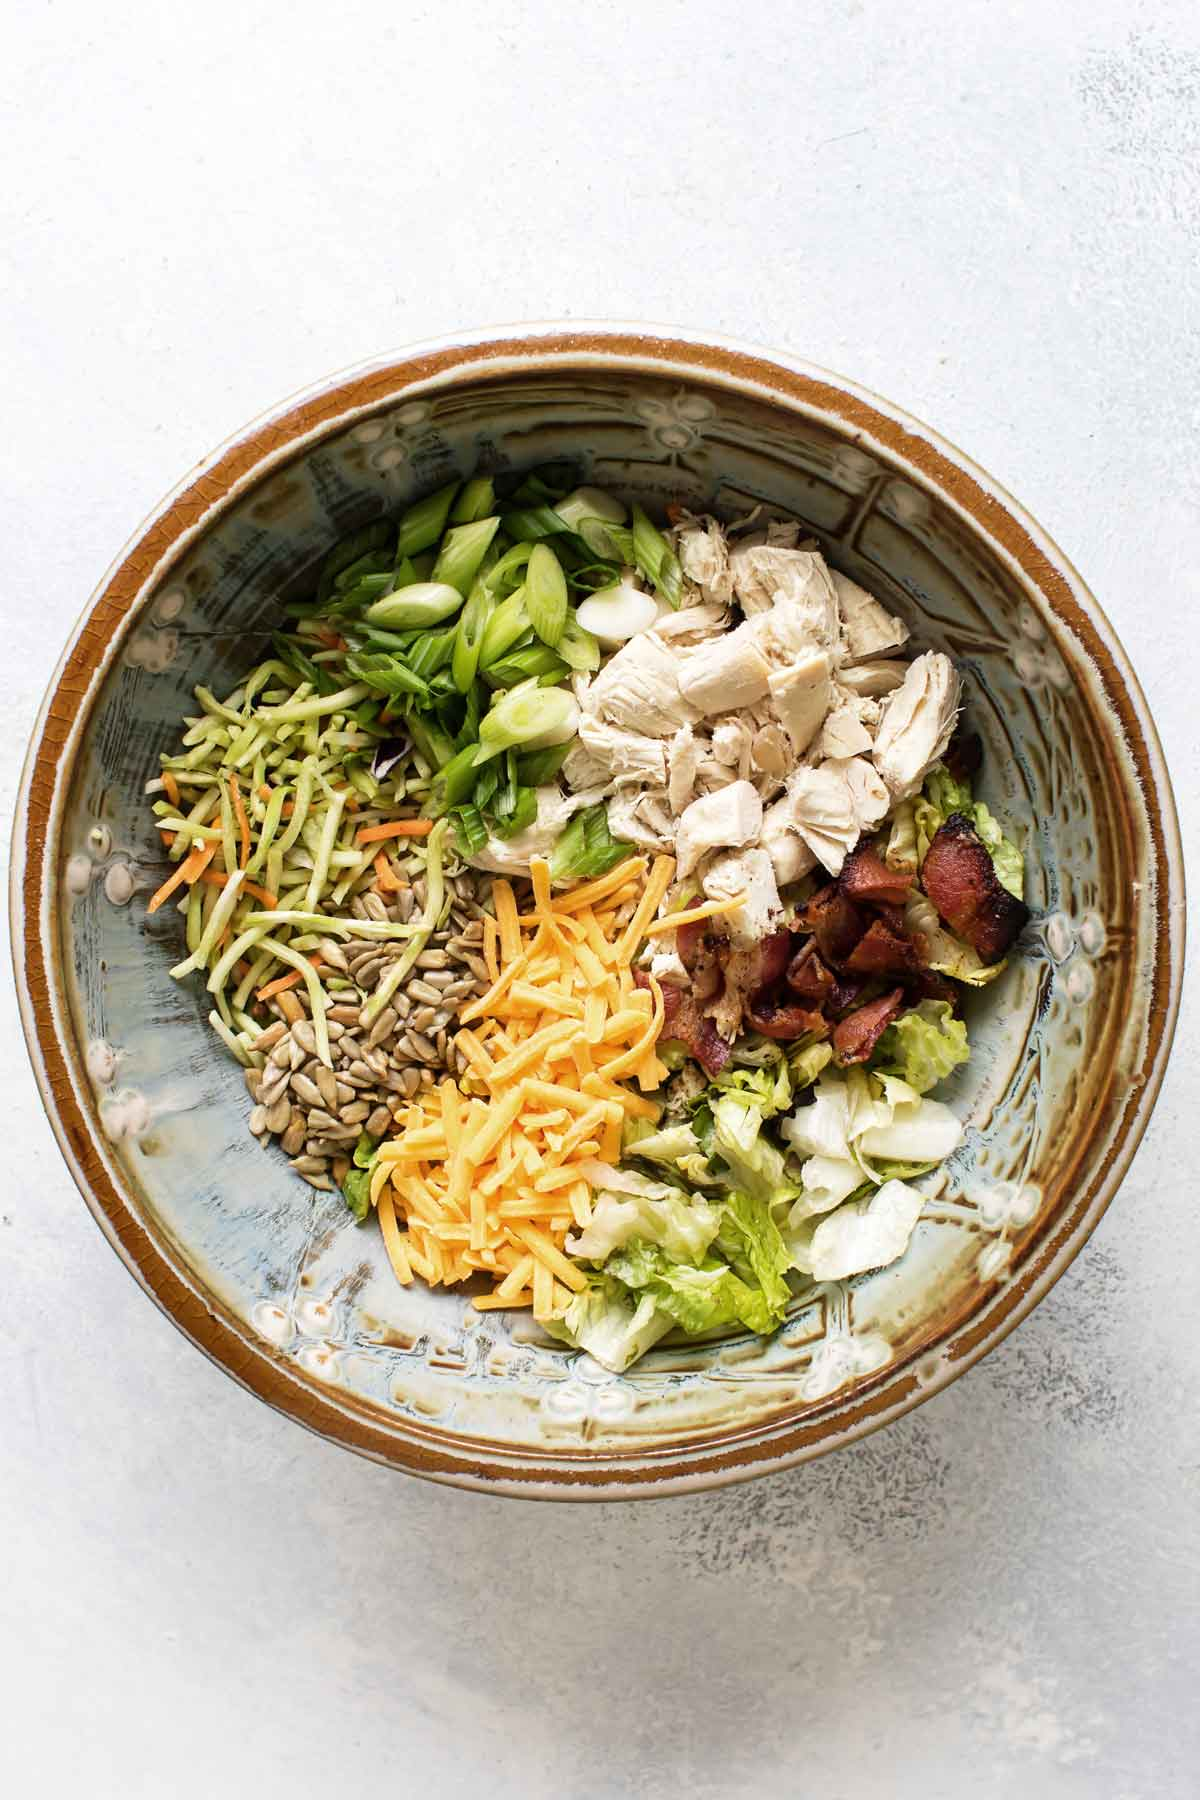 overehad photo of the ingredients in a bowl